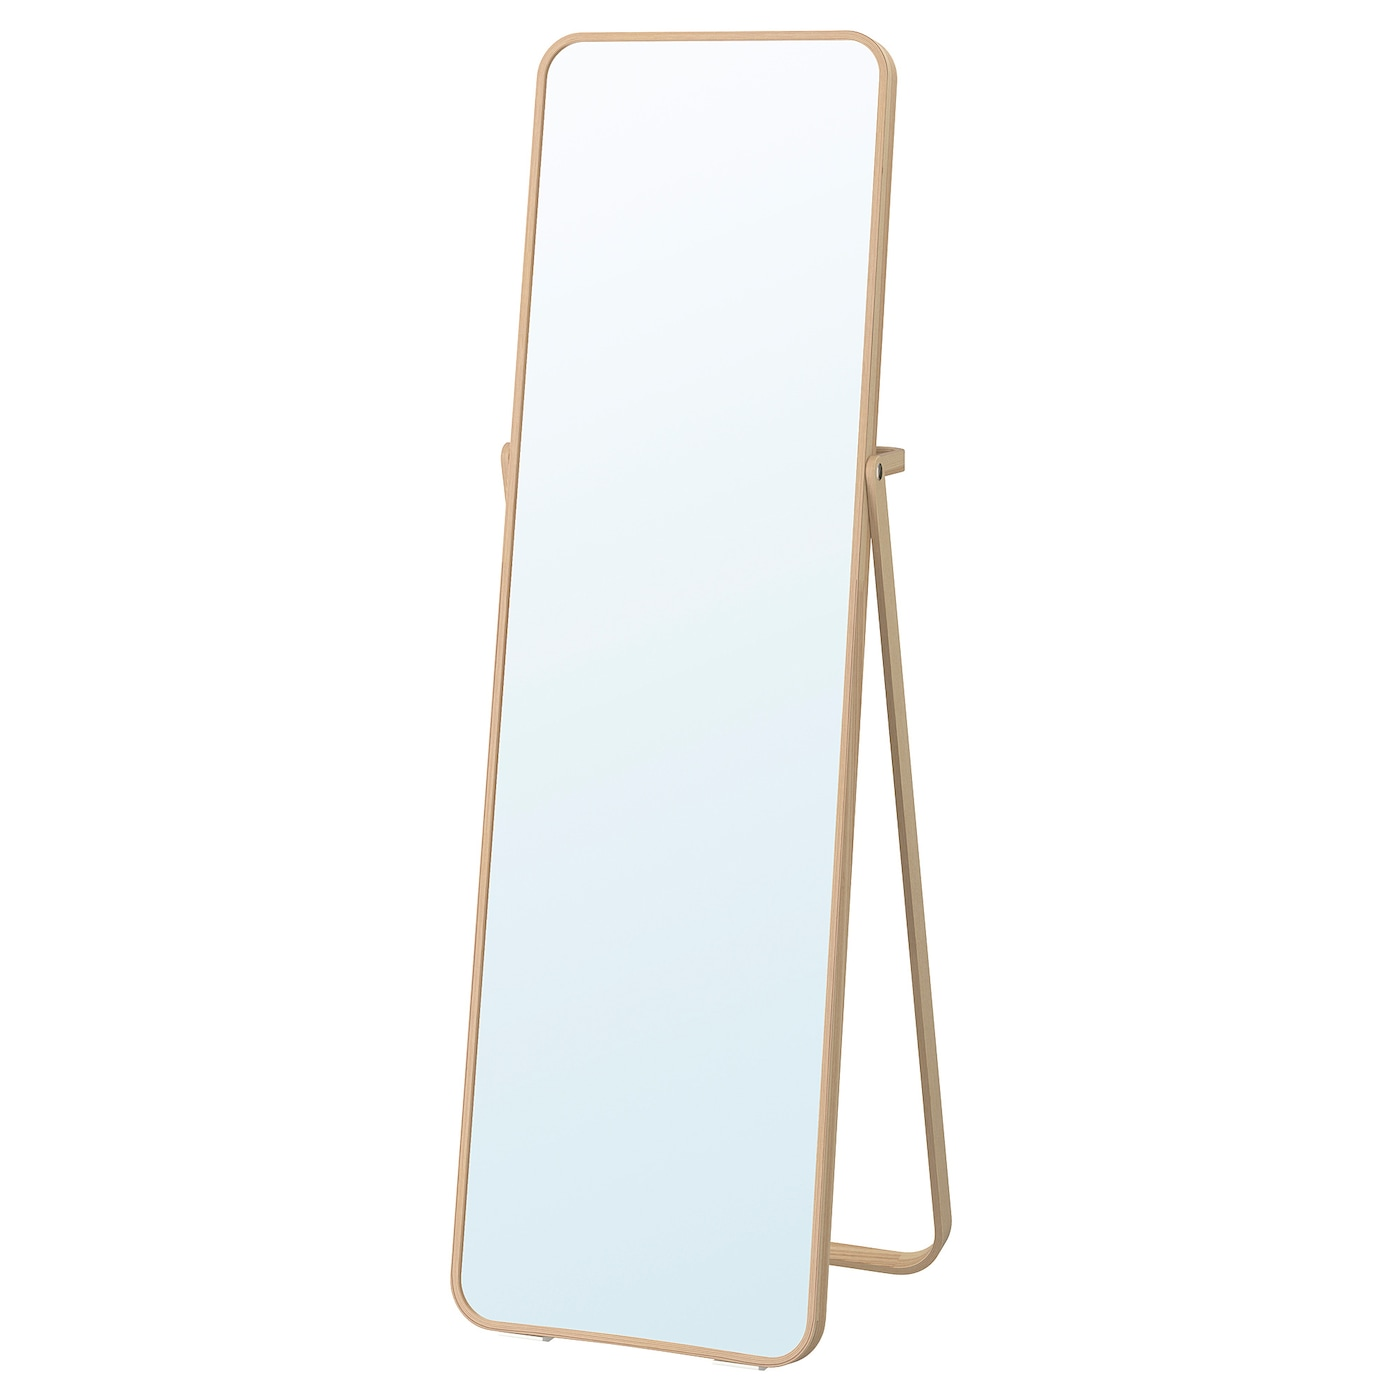 IKEA IKORNNES standing mirror Provided with safety film - reduces damage if the glass is broken.